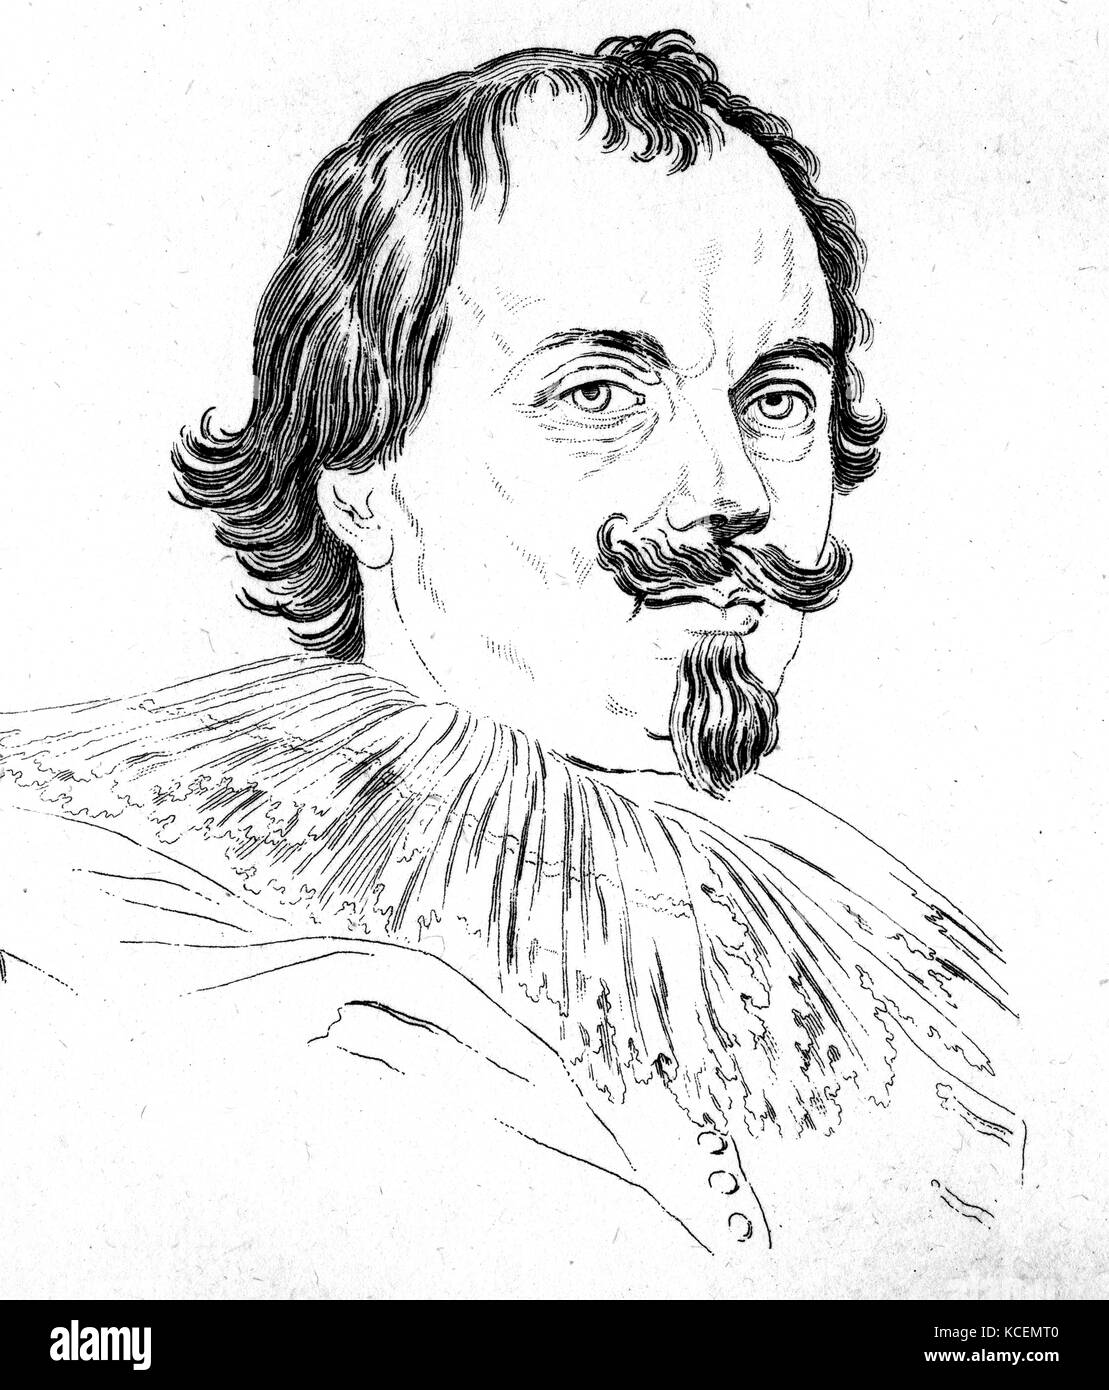 17th century drawing of a man after Van Dyck - Stock Image